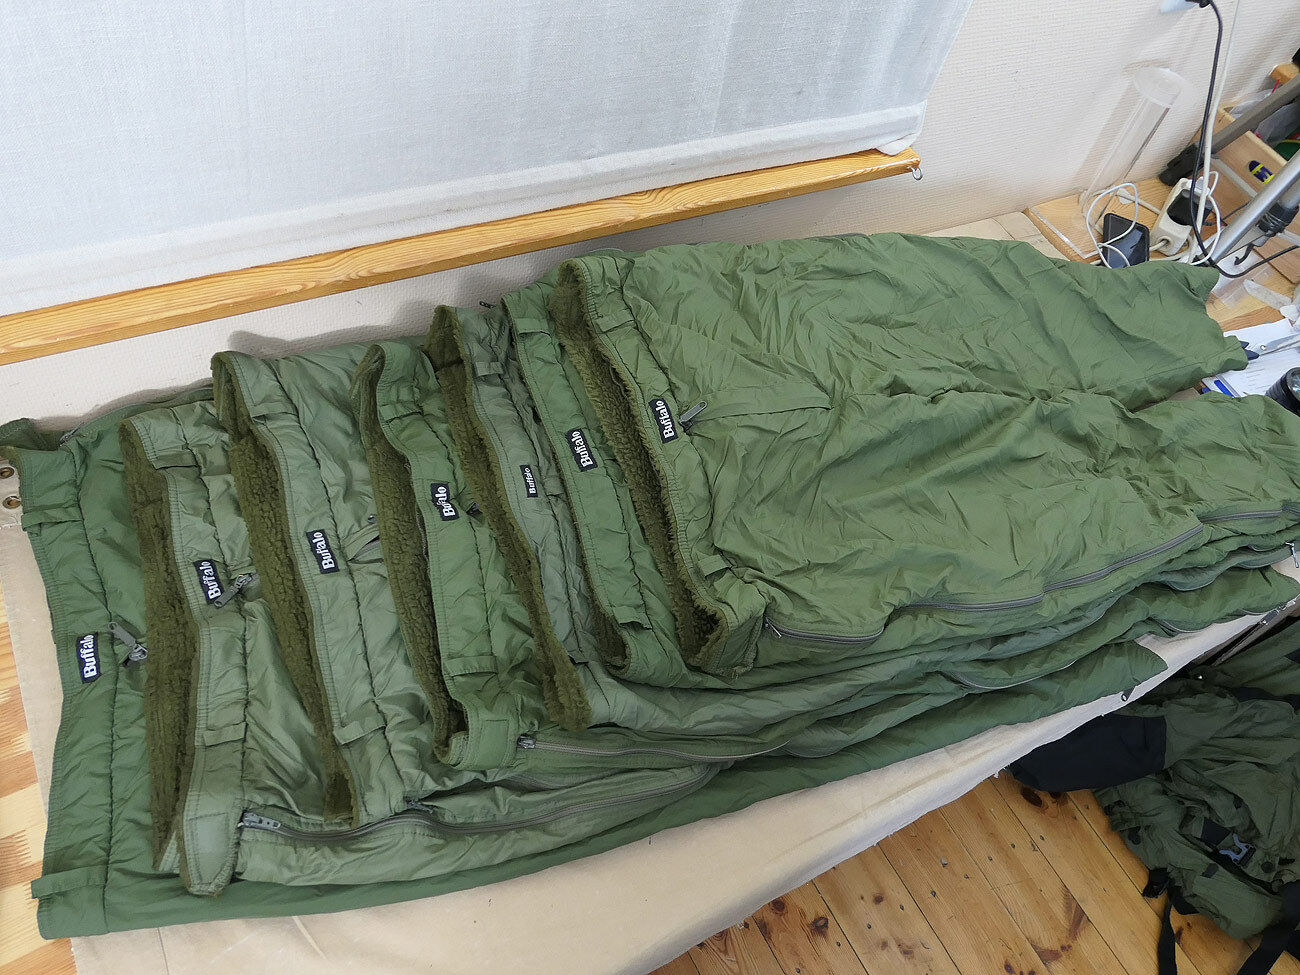 1x St. MB66 Buffalo Systems Outdoor Thermohose UK40i Fleece Funktions Shell Hose